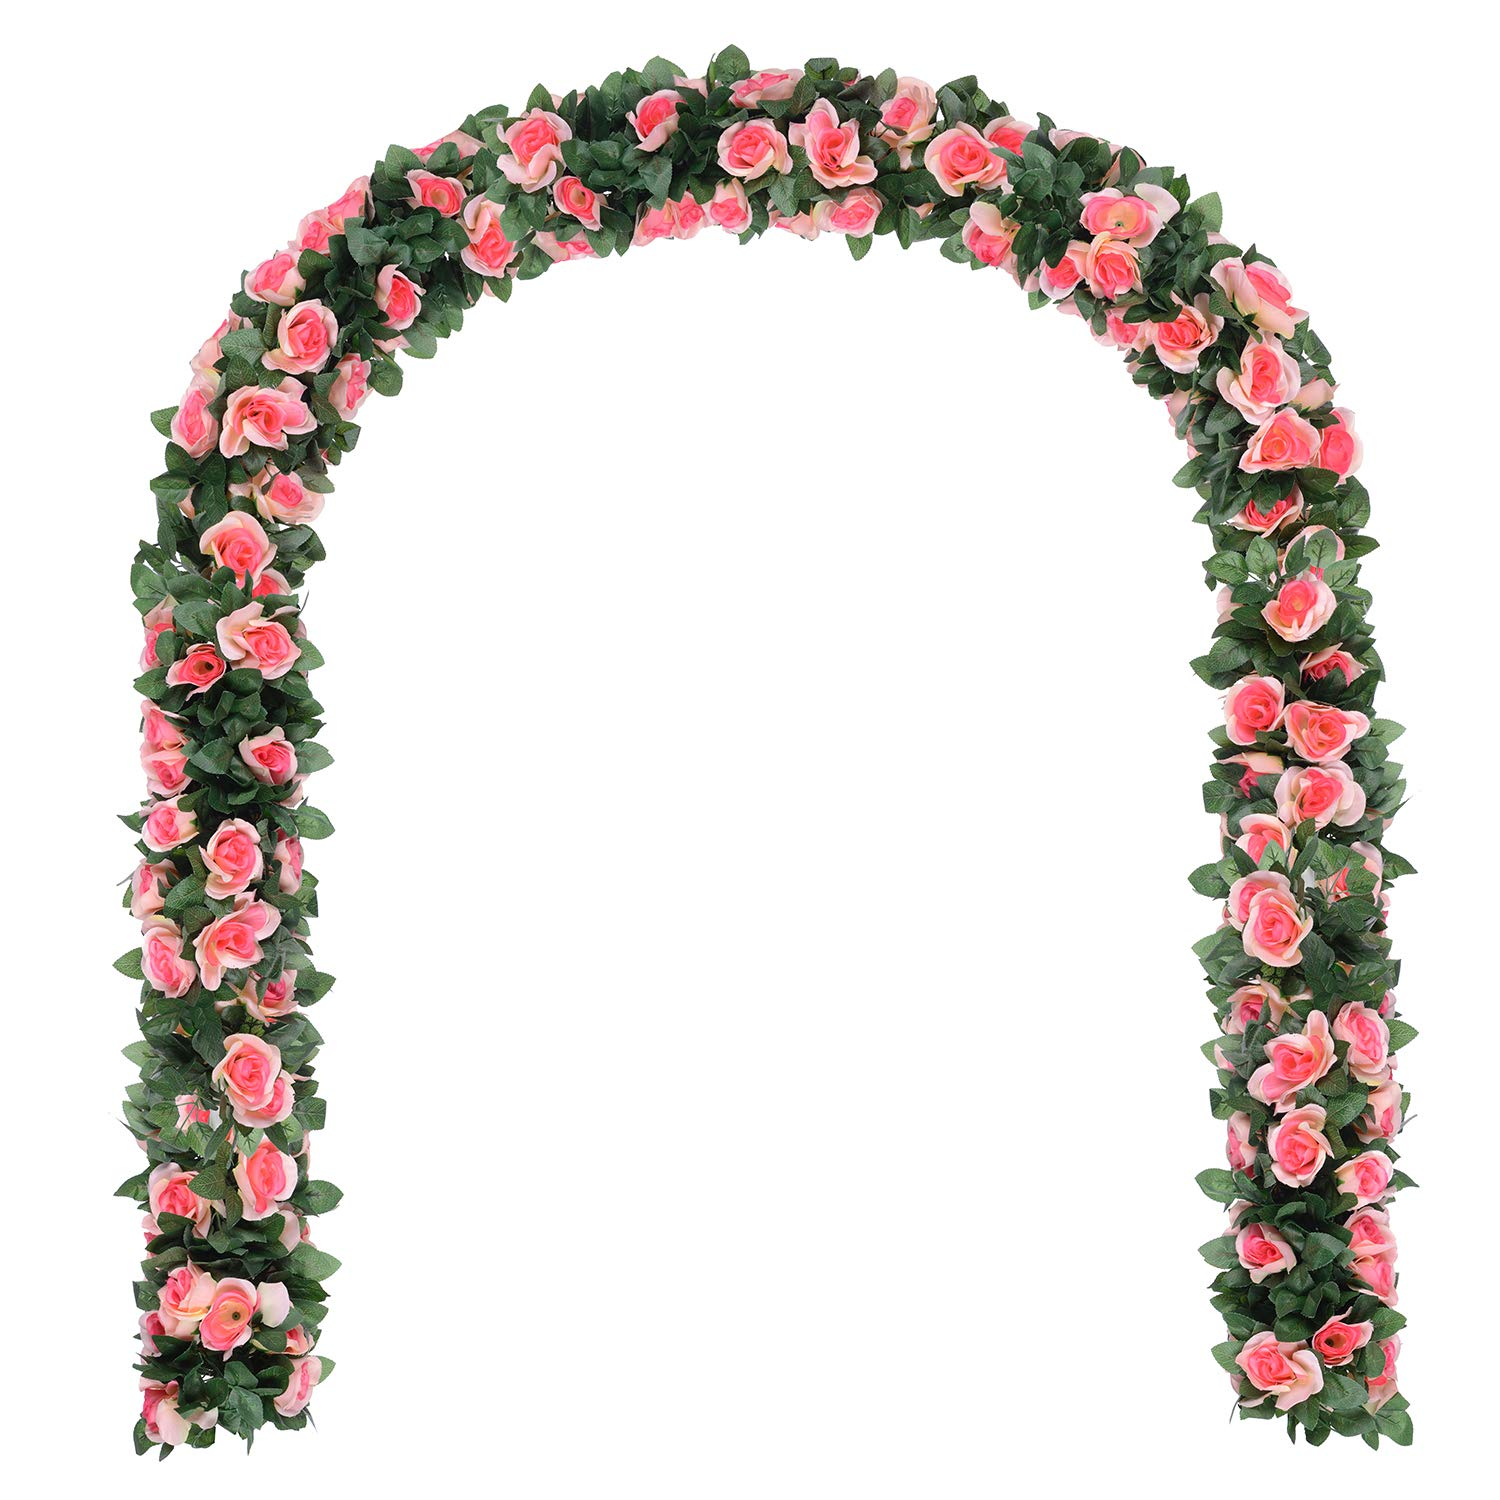 GreenDec Artificial Fake Rose Vine Garland Artificial Flowers plants for Hotel Wedding Home Party Garden Craft Art Decor (Champagne, 2 Pack)